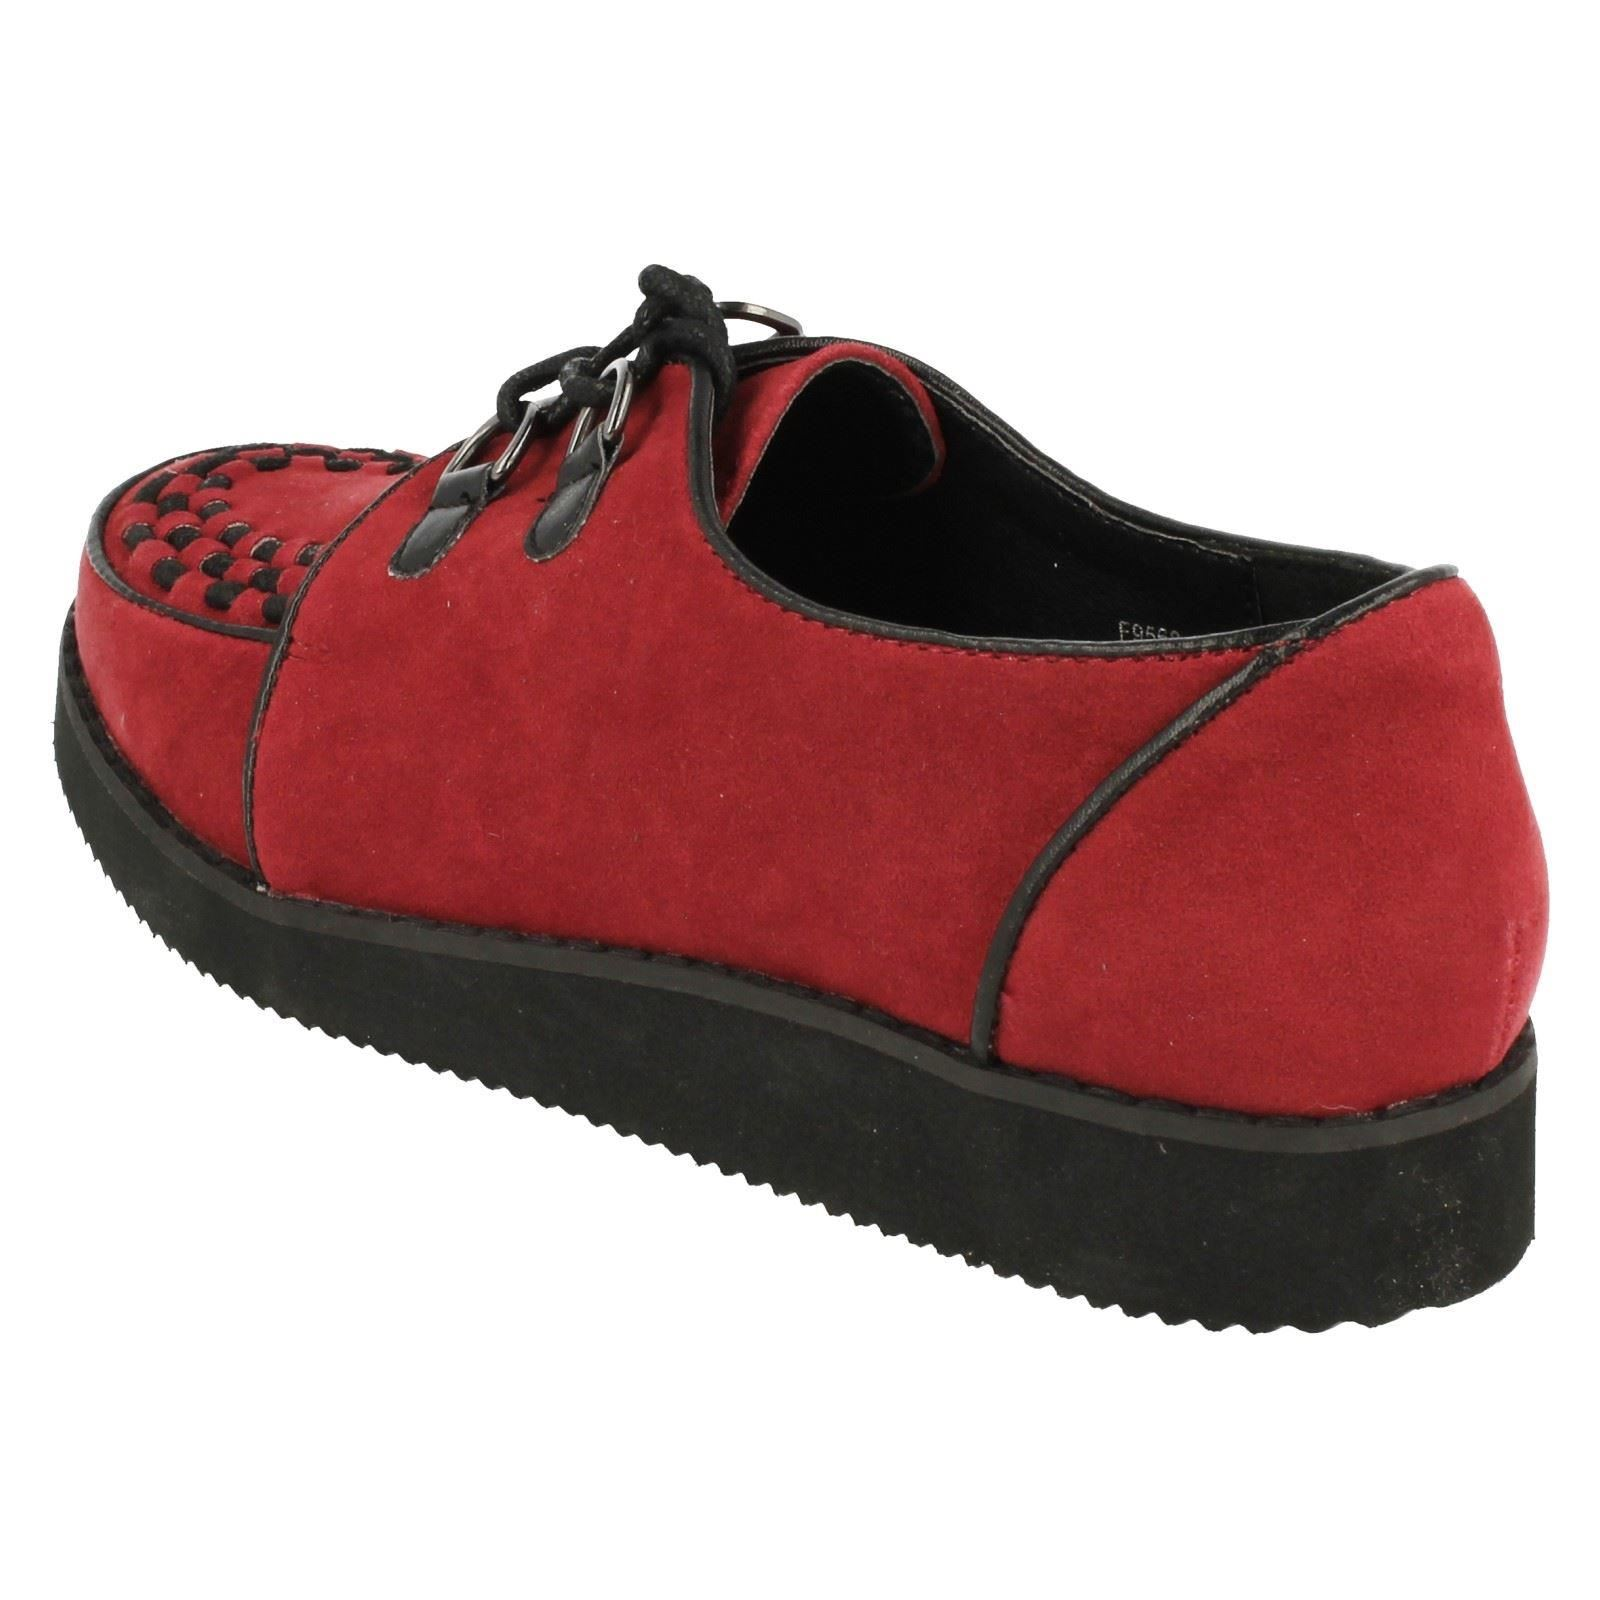 caf0293981e Ladies Spot on Chunky Sole Shoes F9568 Red UK 4 Standard. About this  product. Picture 1 of 10  Picture 2 of 10  Picture 3 of 10  Picture 4 of 10